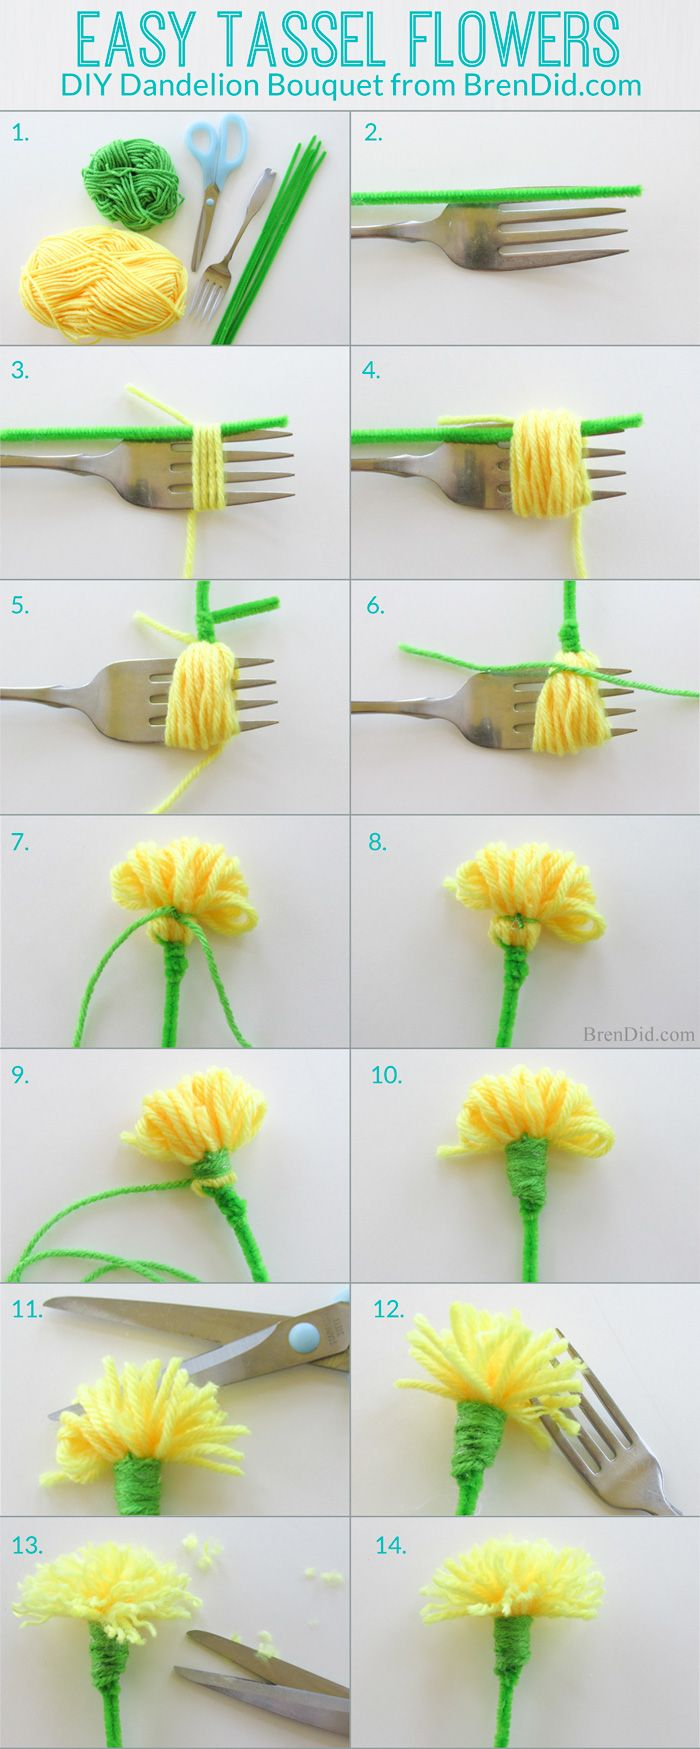 How To Make Easy Tassel Flowers Creative Craft Ideas Pinterest